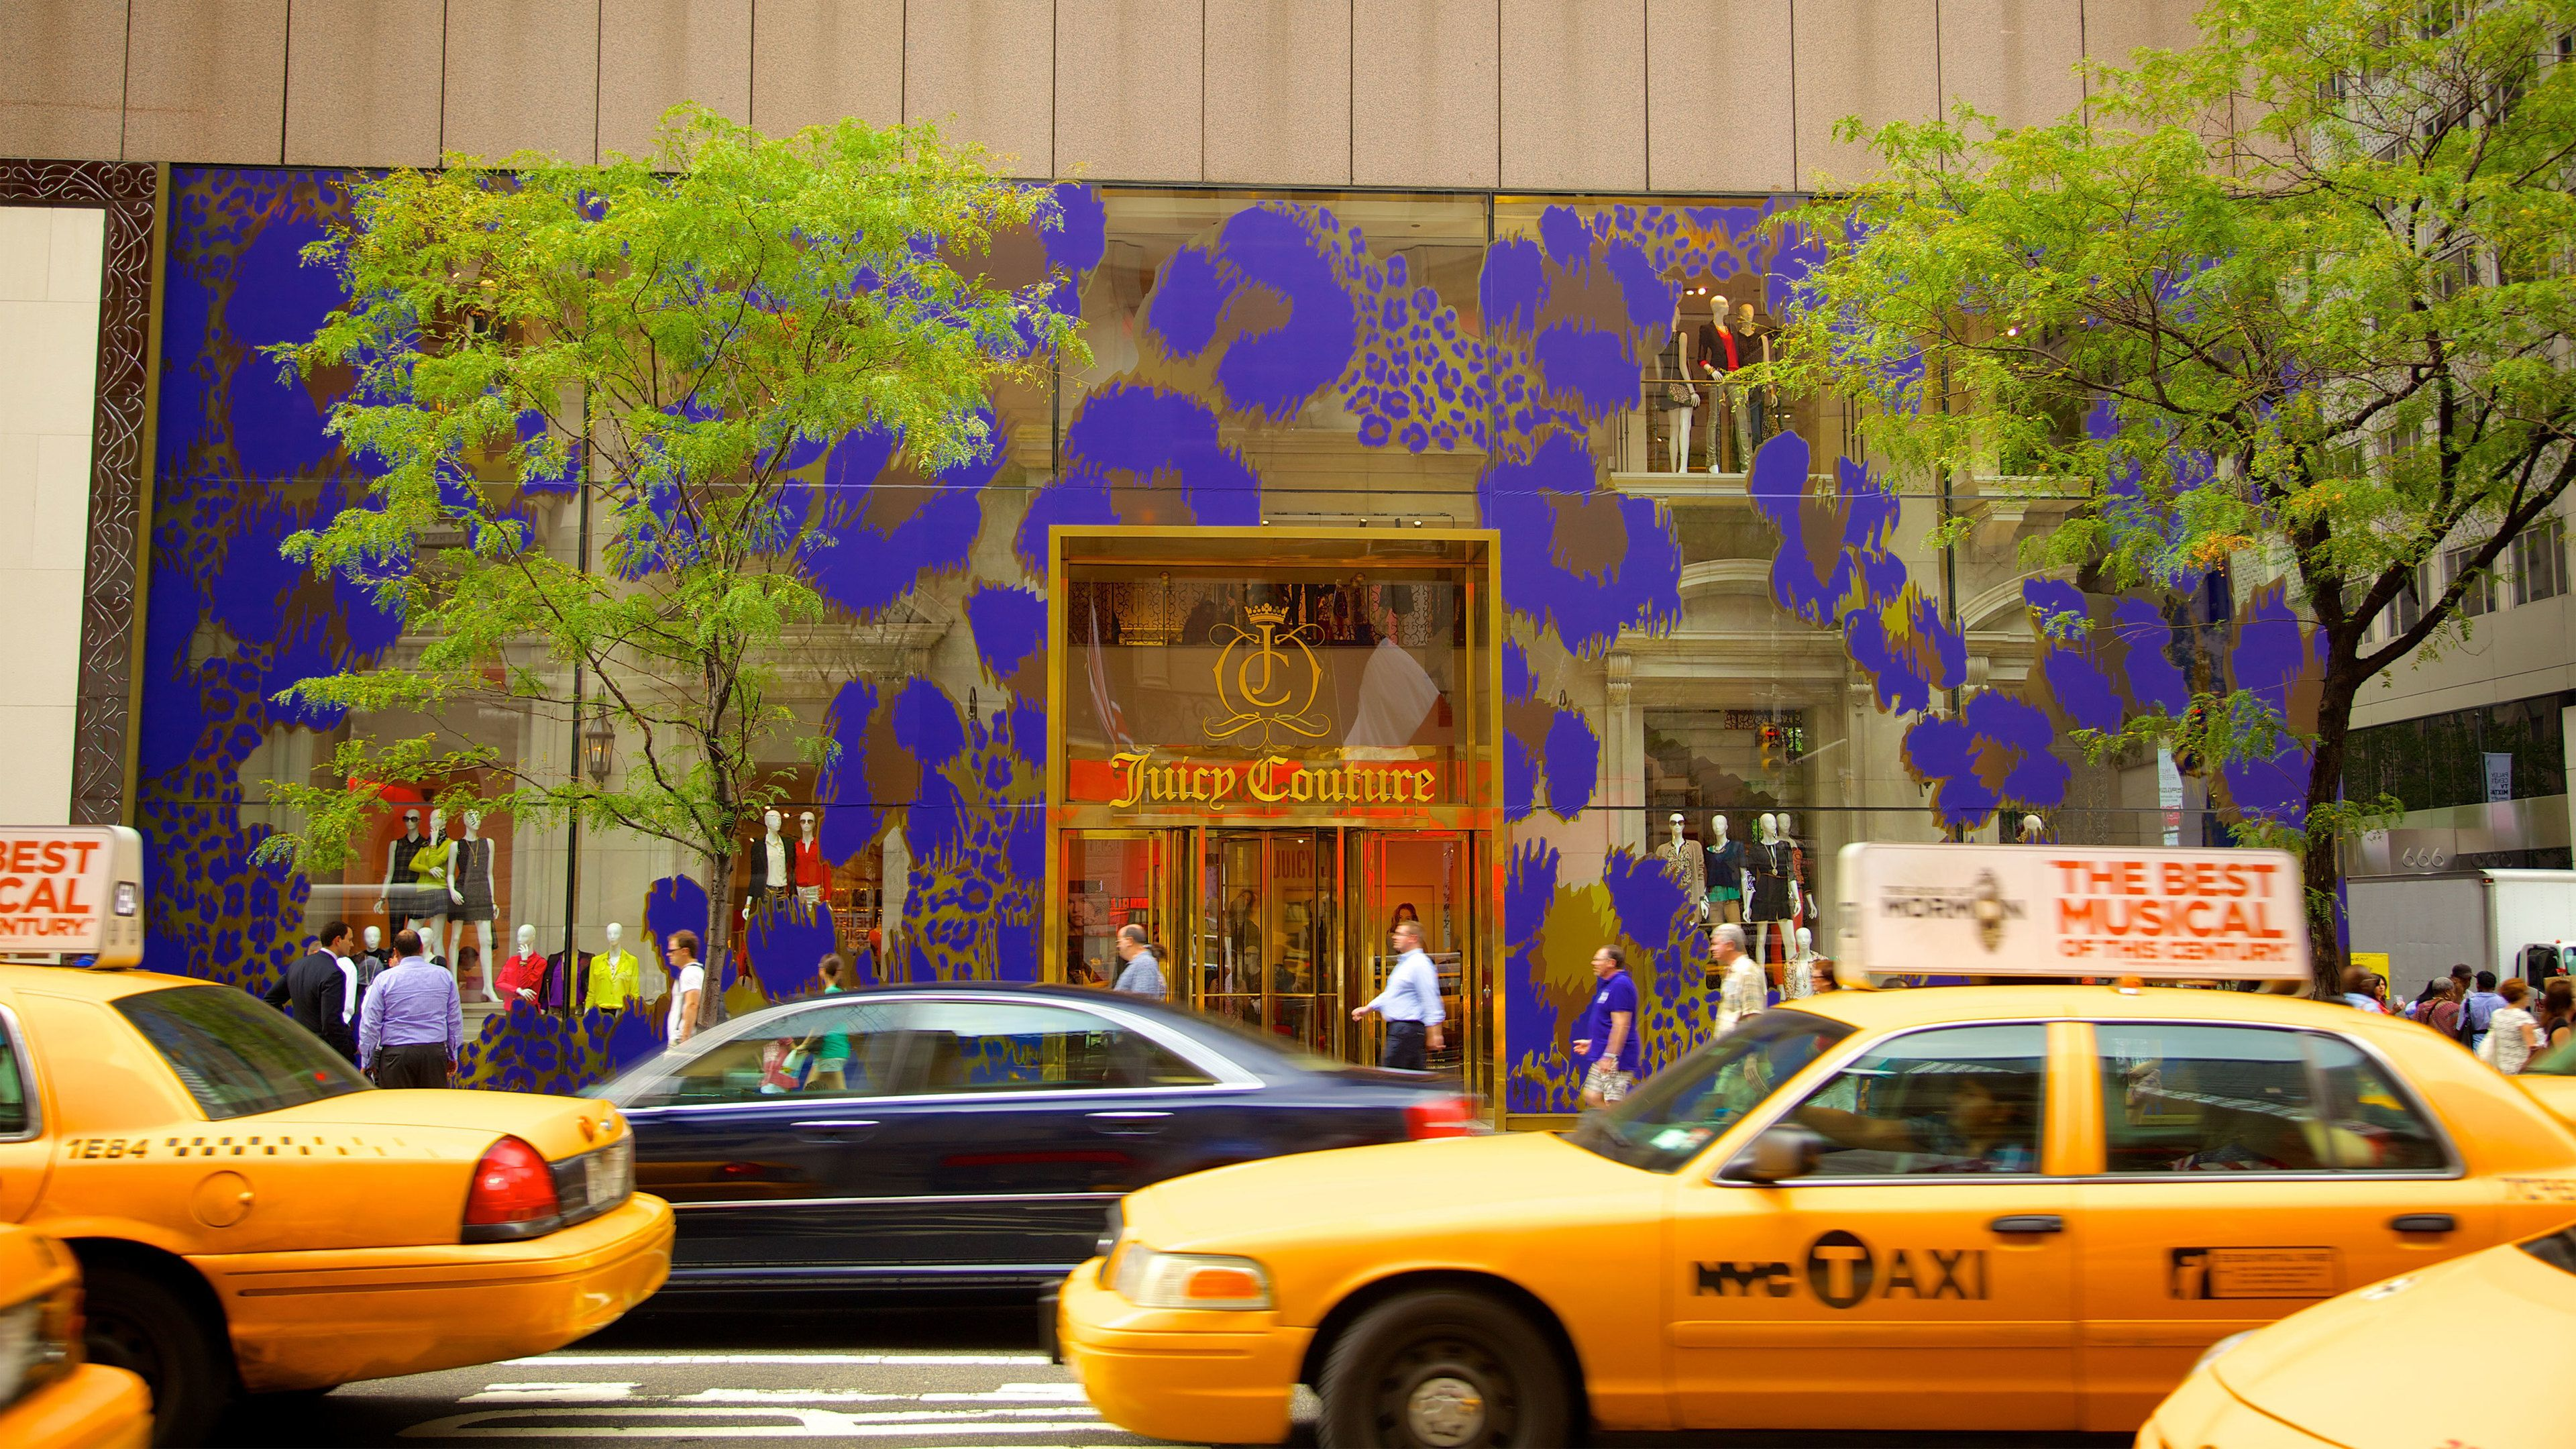 Store on Fifth Avenue in New York